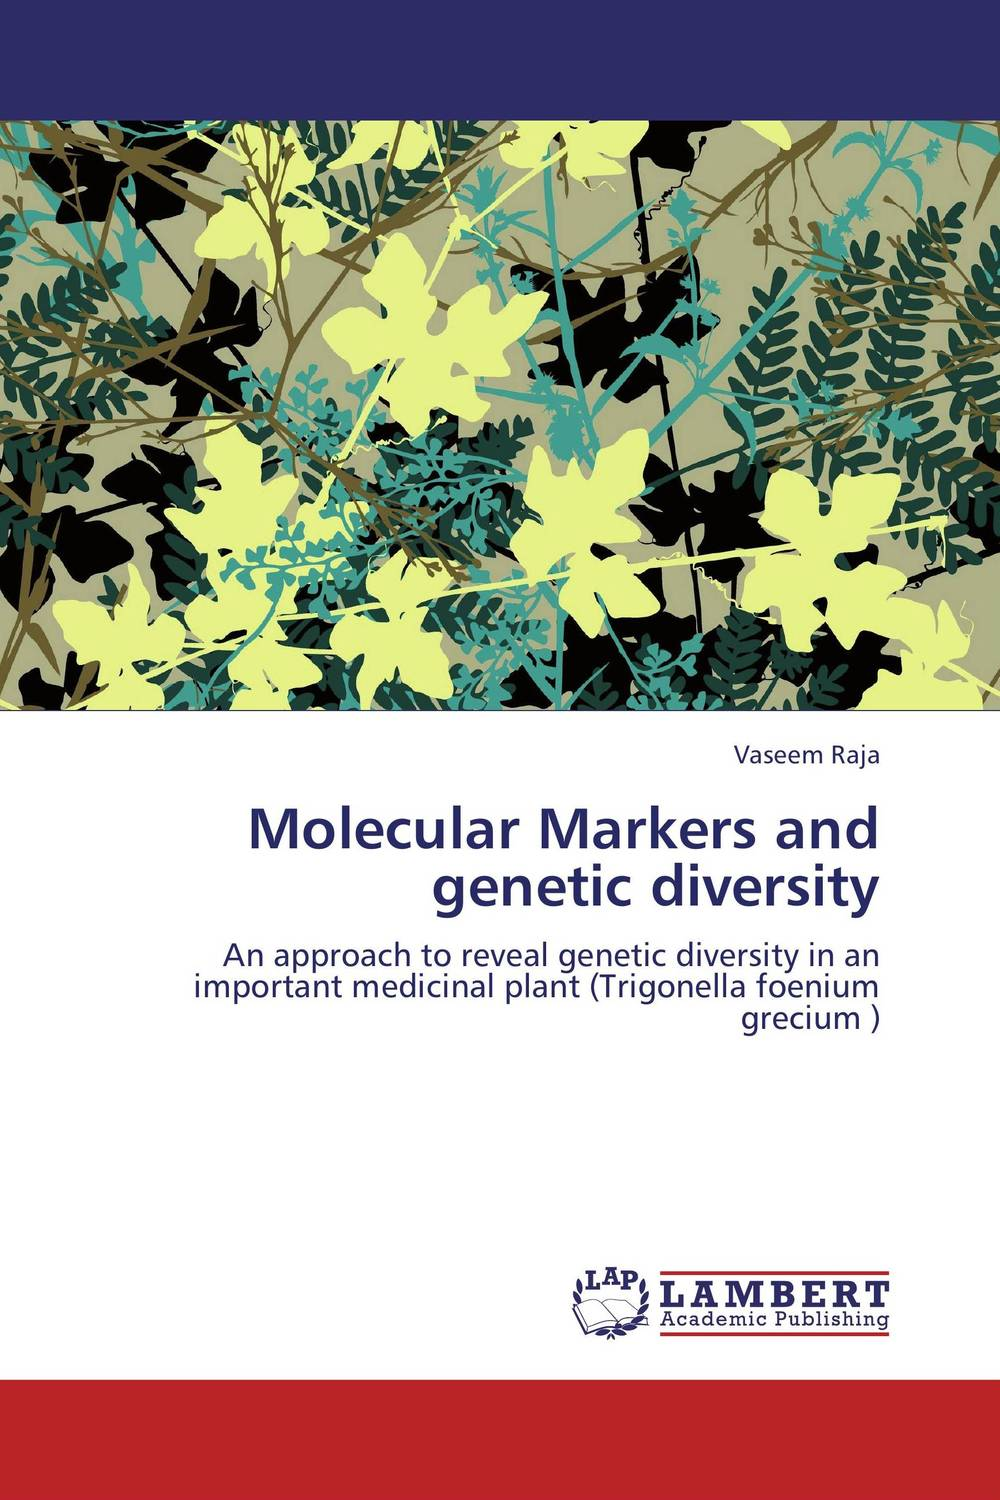 Molecular  Markers and genetic diversity chethan kumar m r rajendra prasad s and radha b n identificaction and standerdization of molecular markers